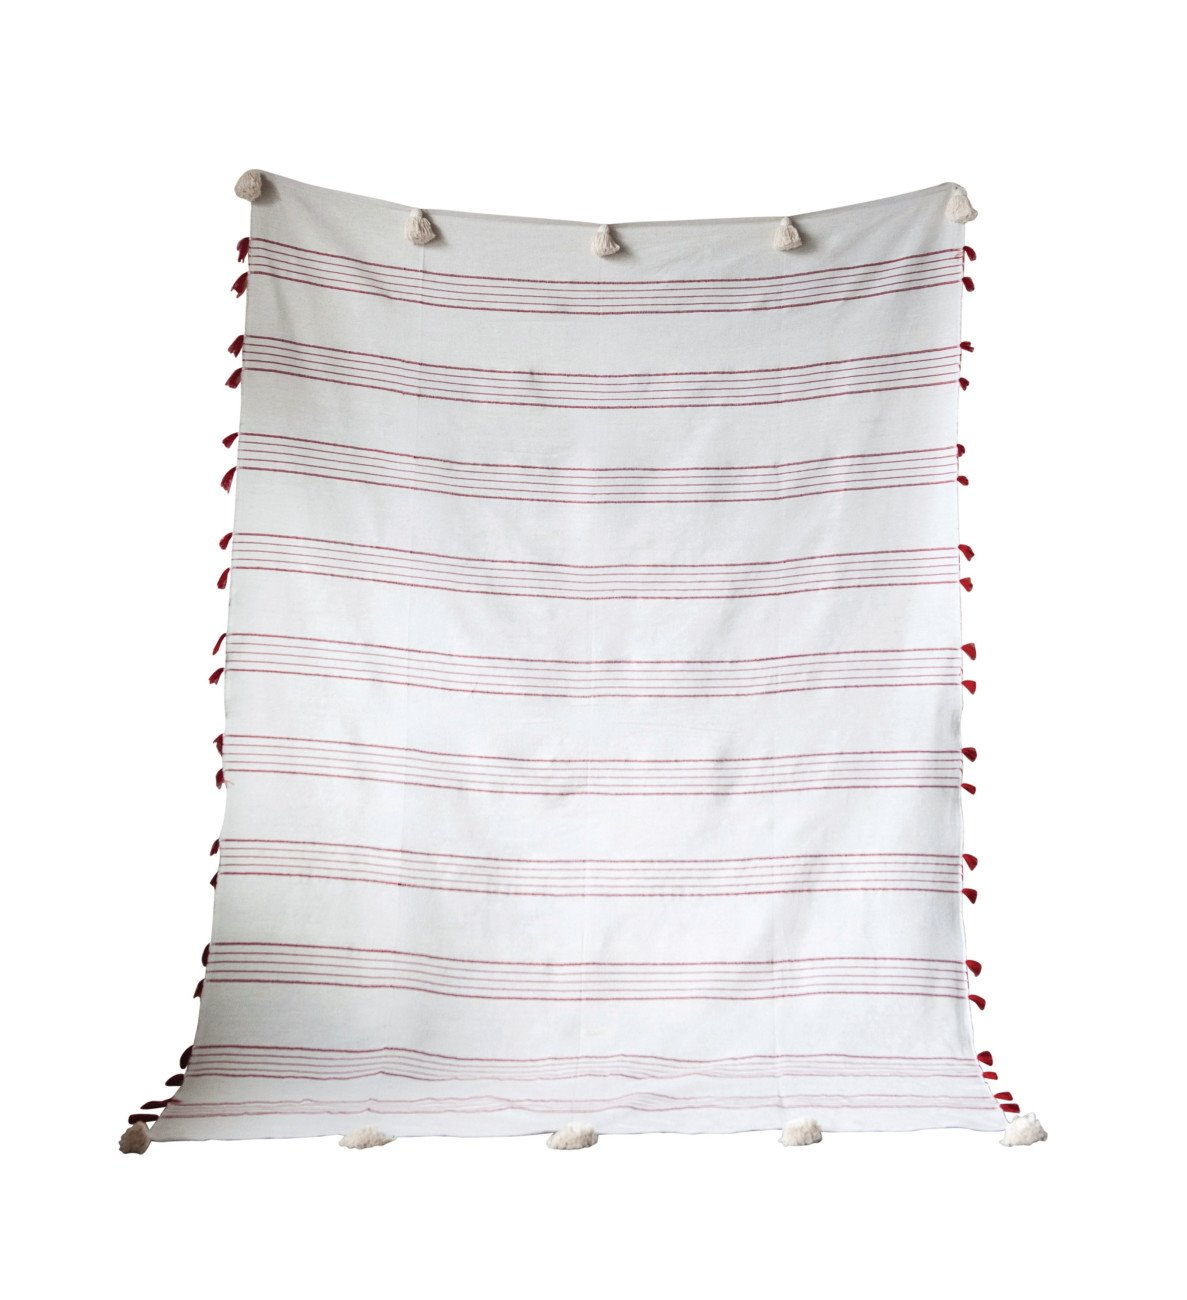 Red & White Striped Hand-Loomed Cotton Bed Cover with Tassels